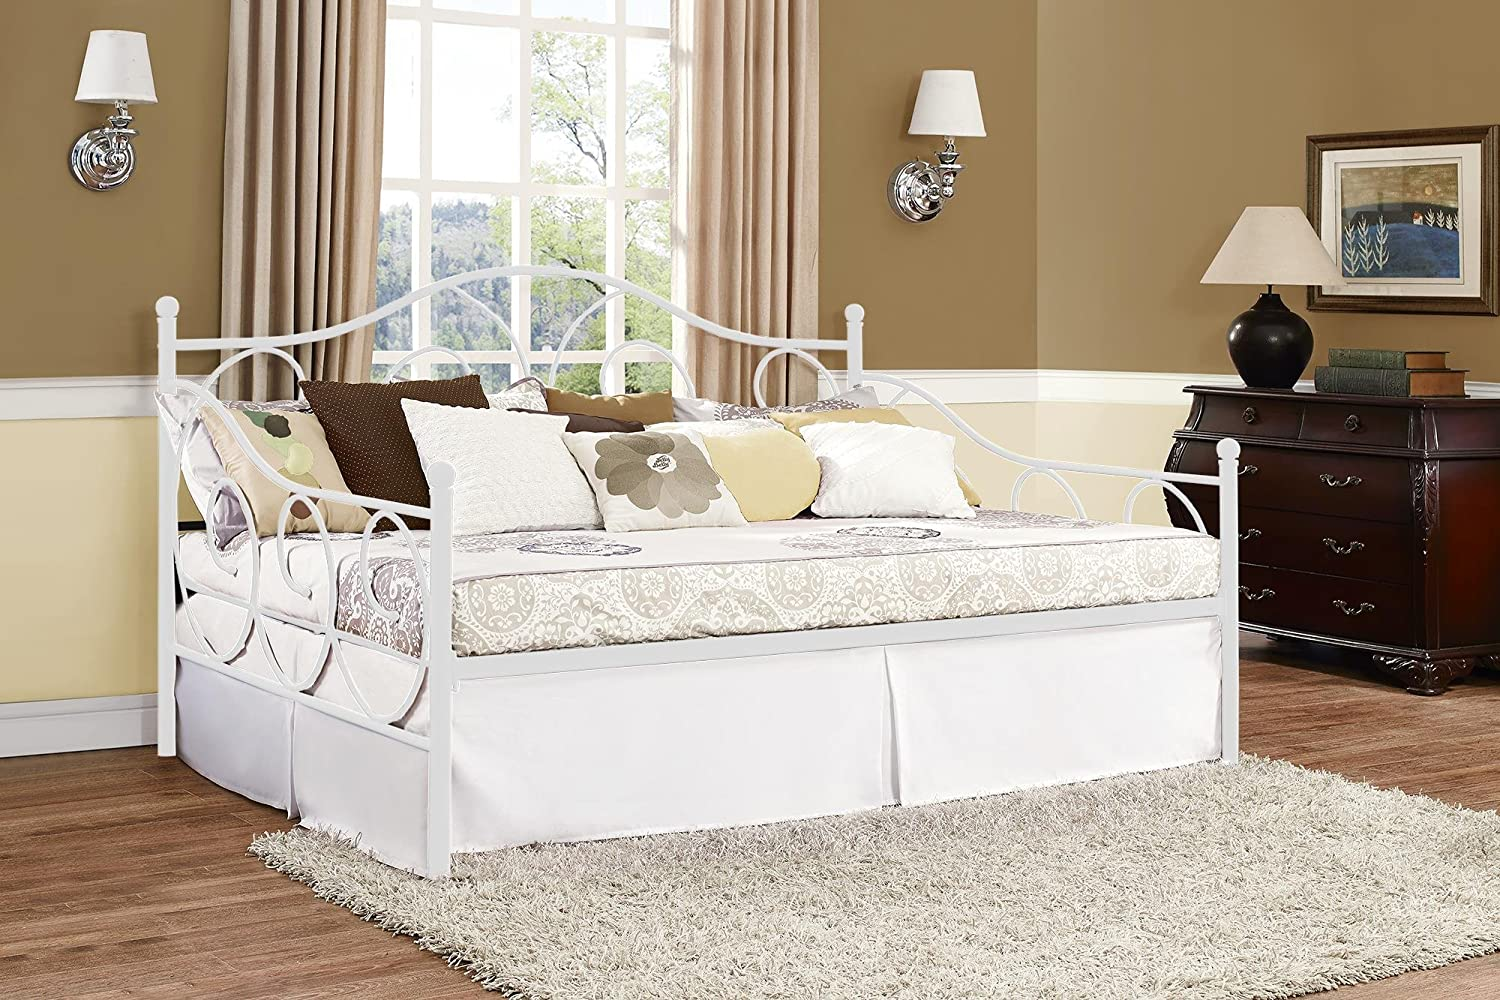 Amazon.com: DHP Victoria Full Size Metal Daybed, White: Kitchen U0026 Dining